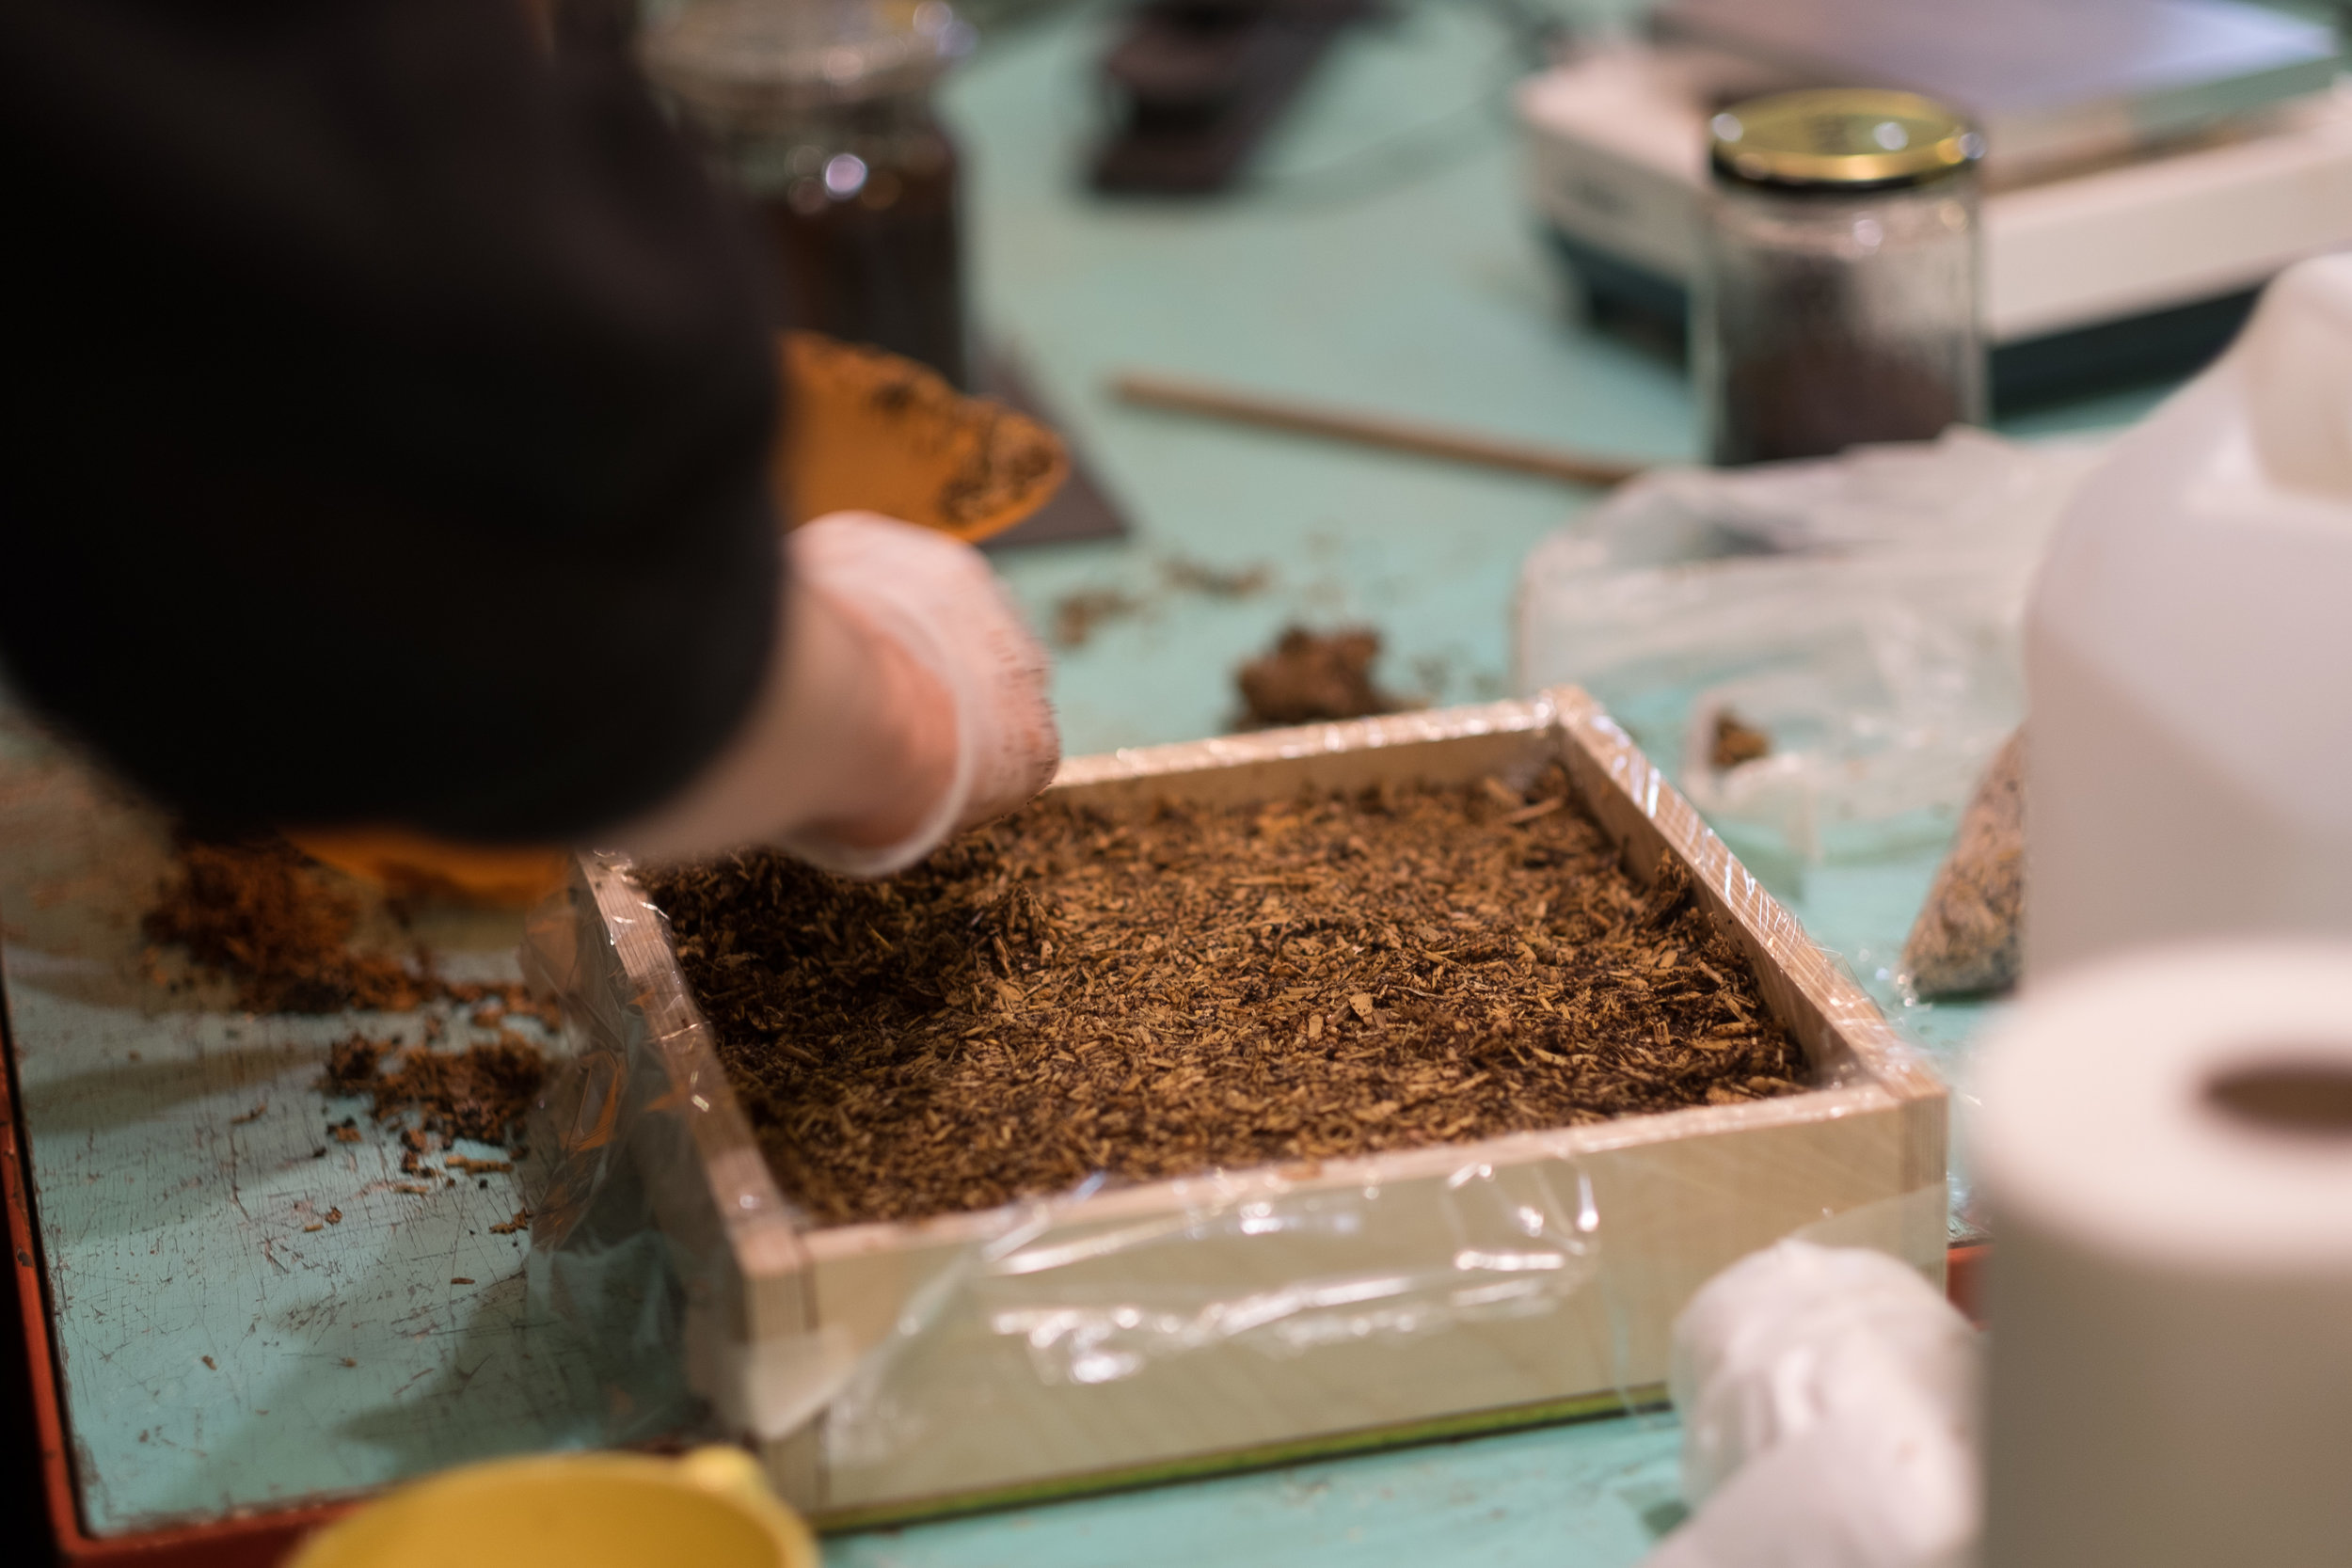 Placing the hemp fibres mixed with the mycelium in a mould.